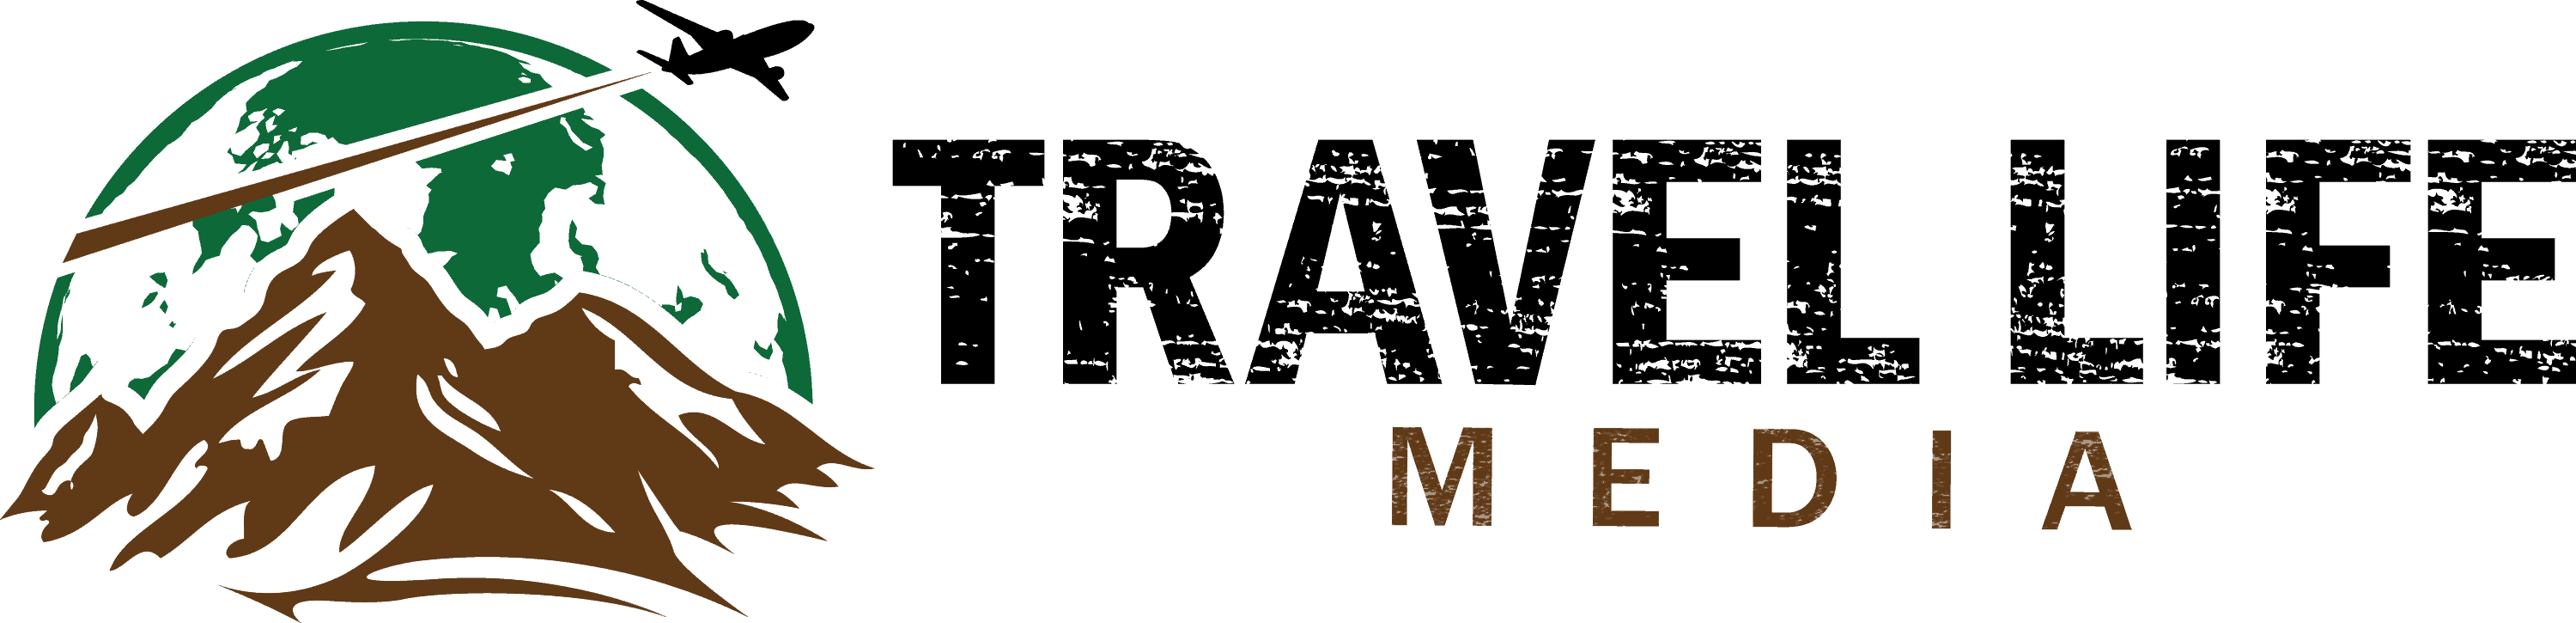 Travel Life Media - Multi-Media Story Telling